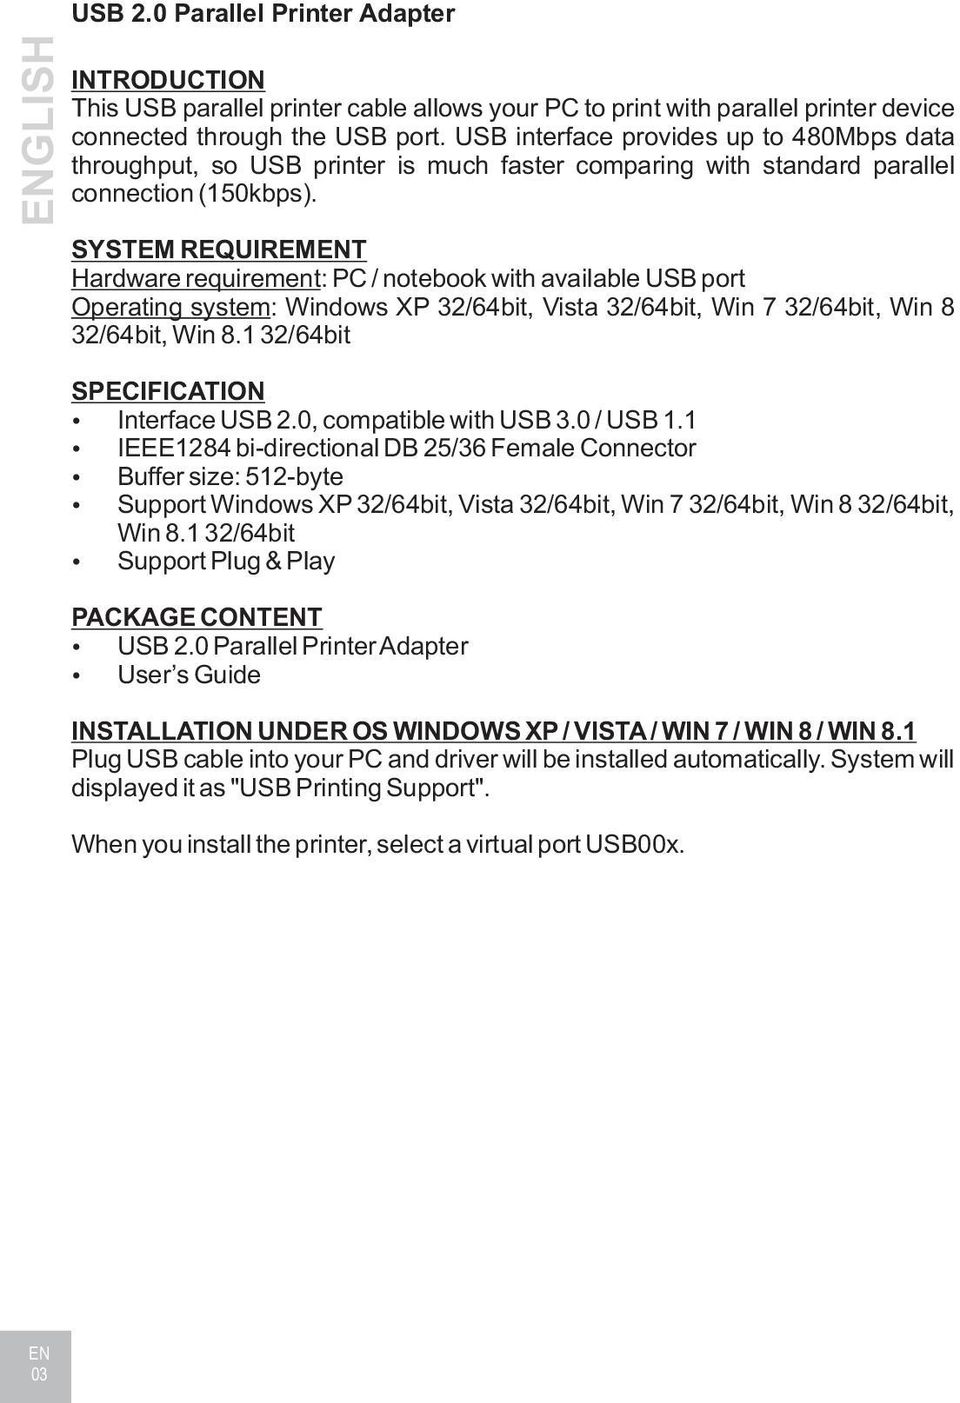 SYSTEM REQUIREMENT Hardware requirement: PC / notebook with available USB port Operating system: Windows XP 32/64bit, Vista 32/64bit, Win 7 32/64bit, Win 8 SPECIFICATION Interface USB 2.